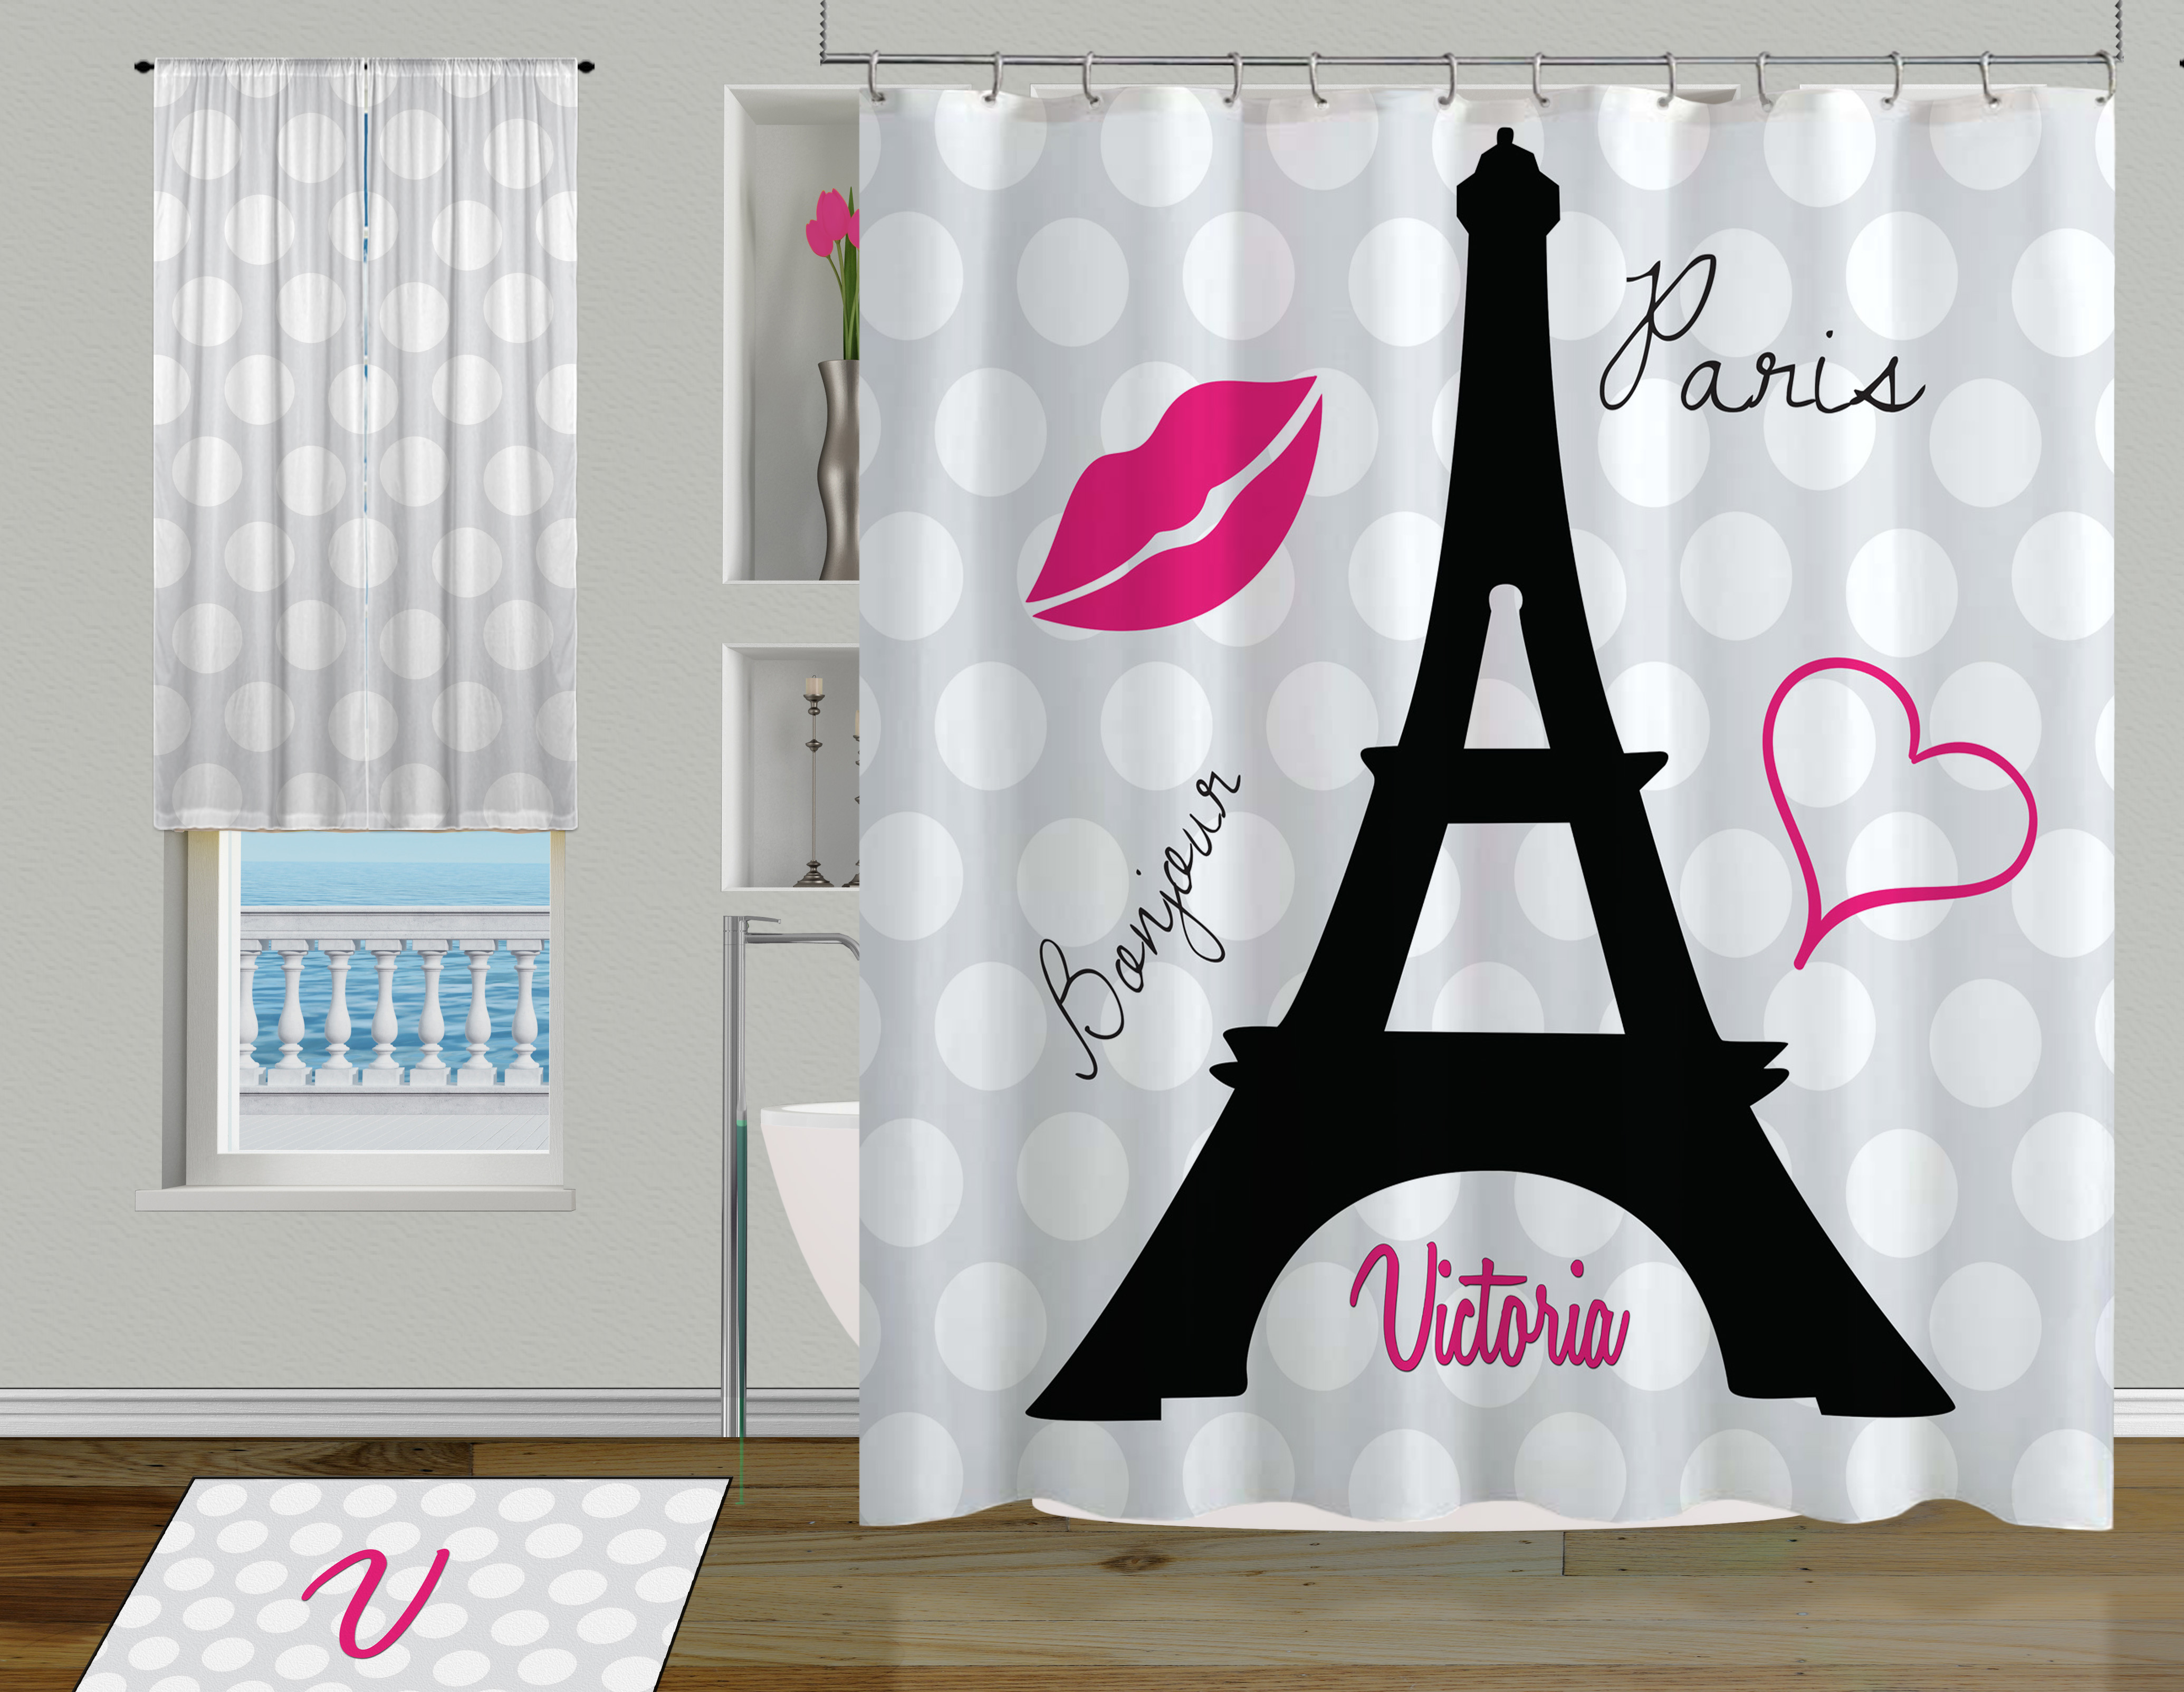 Cute Girly Shower Curtains Black And White Eiffel Tower Shower Curtain Cute Paris Girls Shower Curtain 79